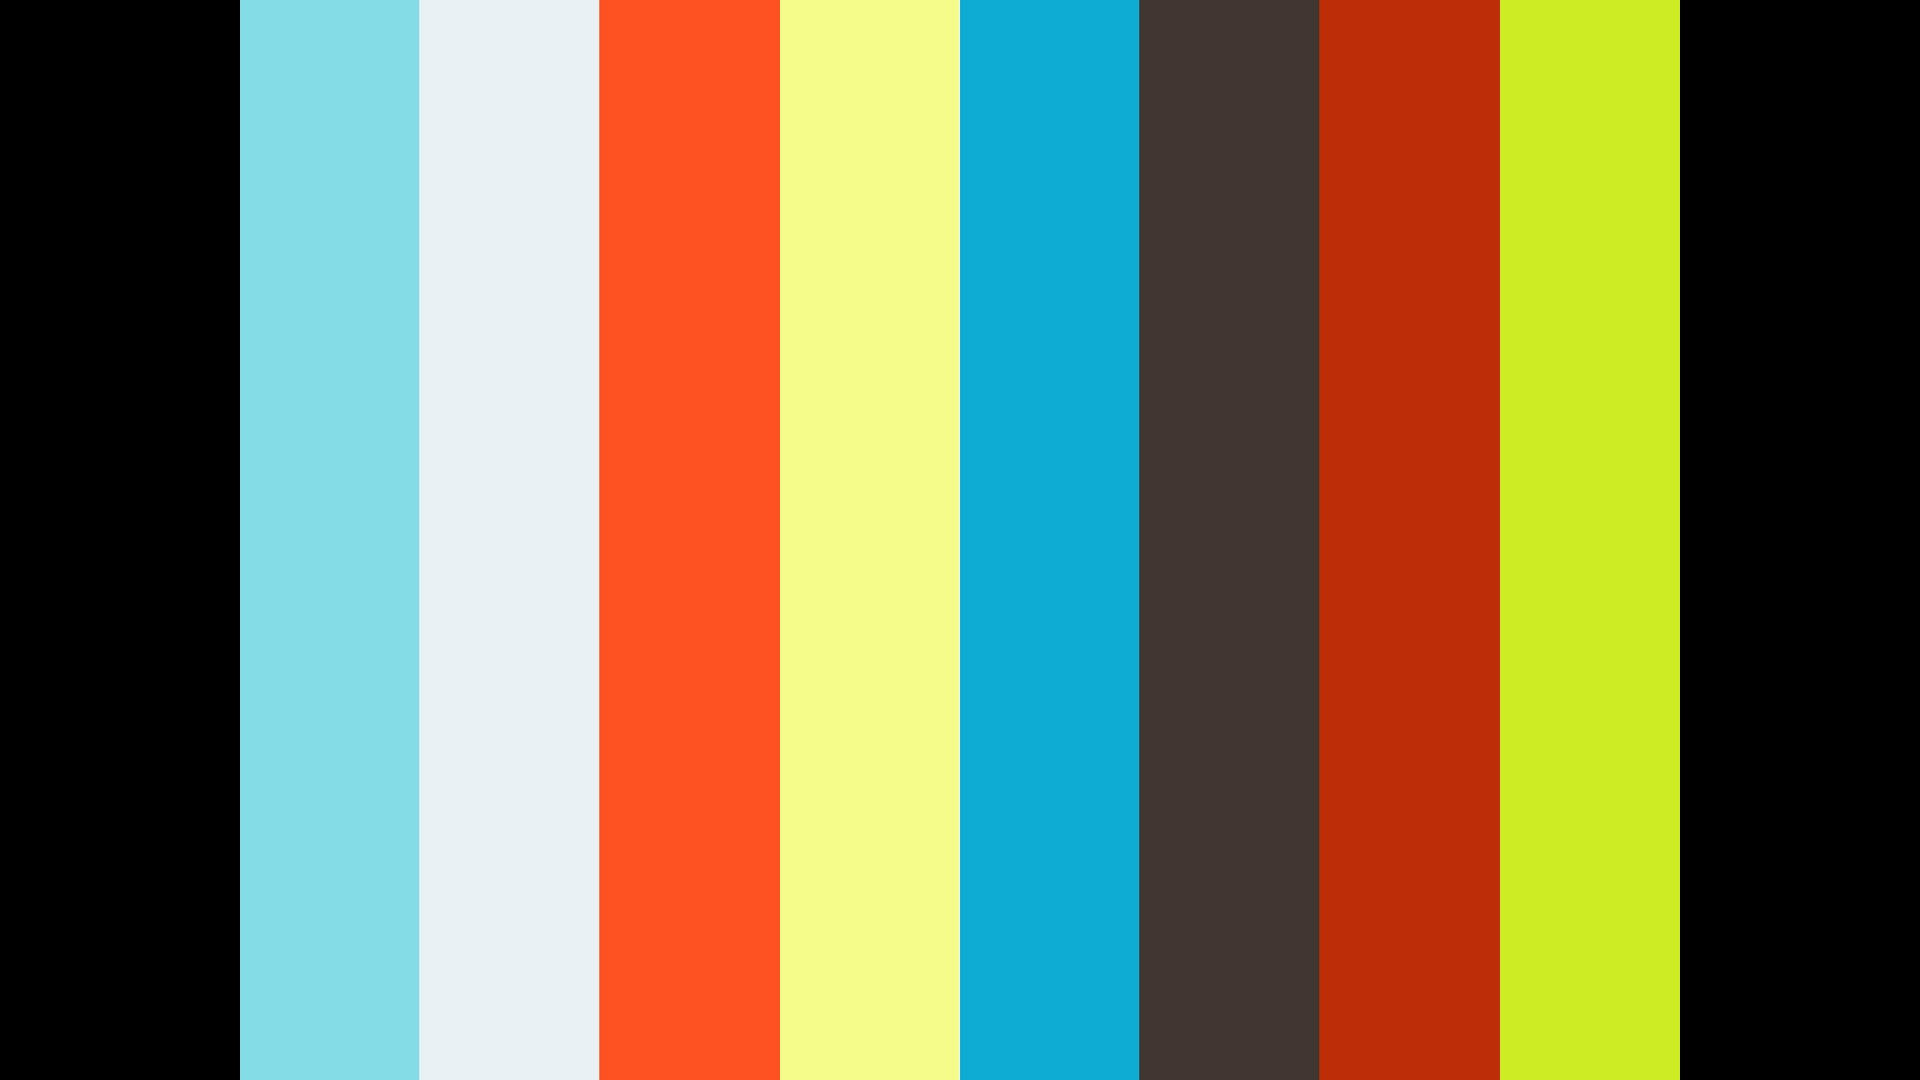 A YOUNG BOY IN THE TOWN CENTRE WITH OSCAR